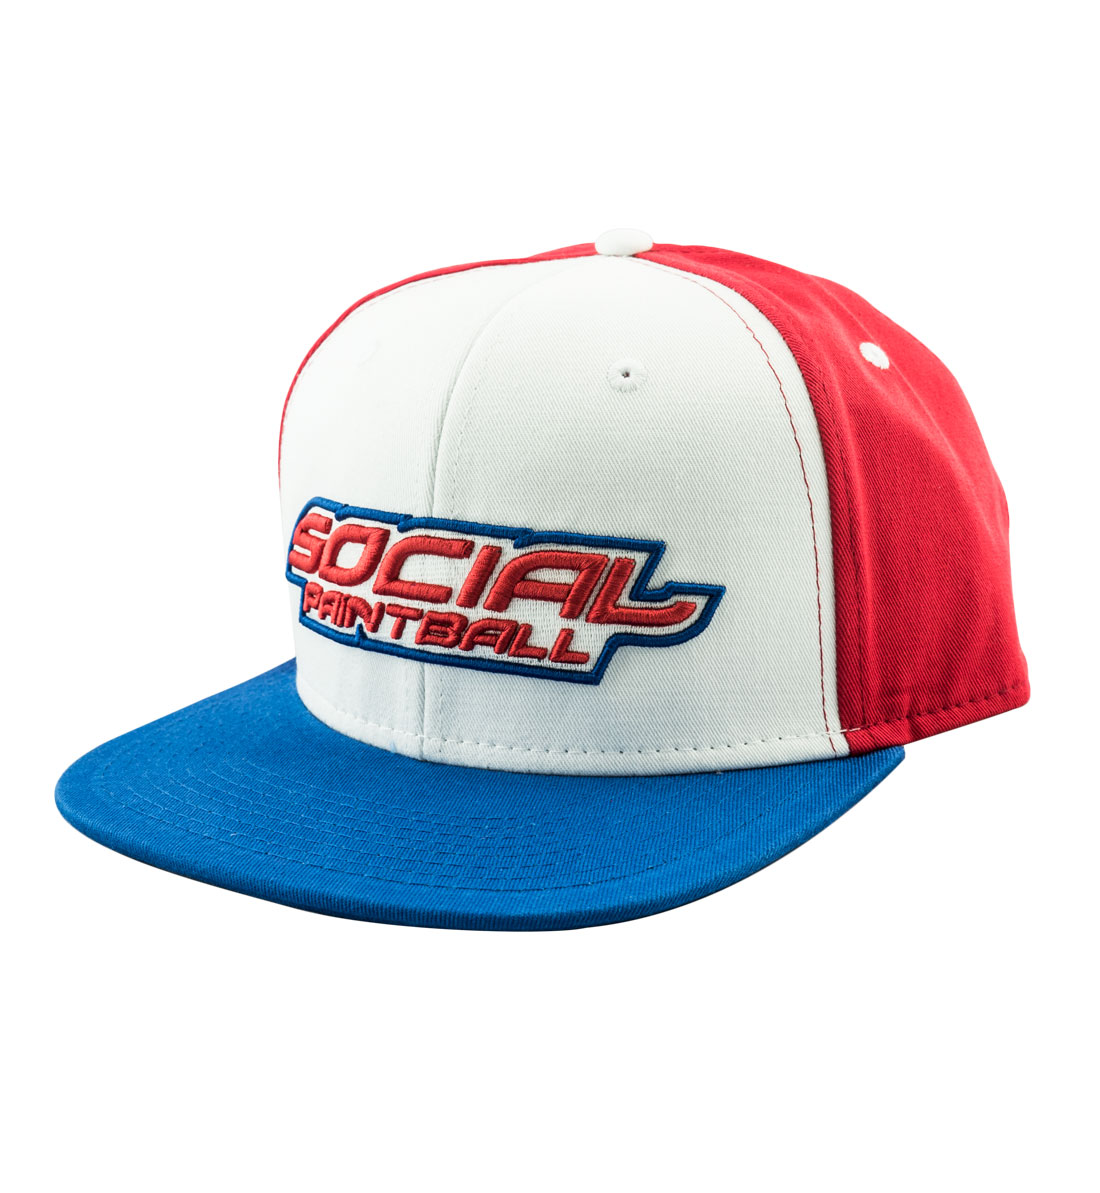 961a0fb1aa1953 Snapback Hat, Social USA, Red White, Blue Bill - Social Paintball